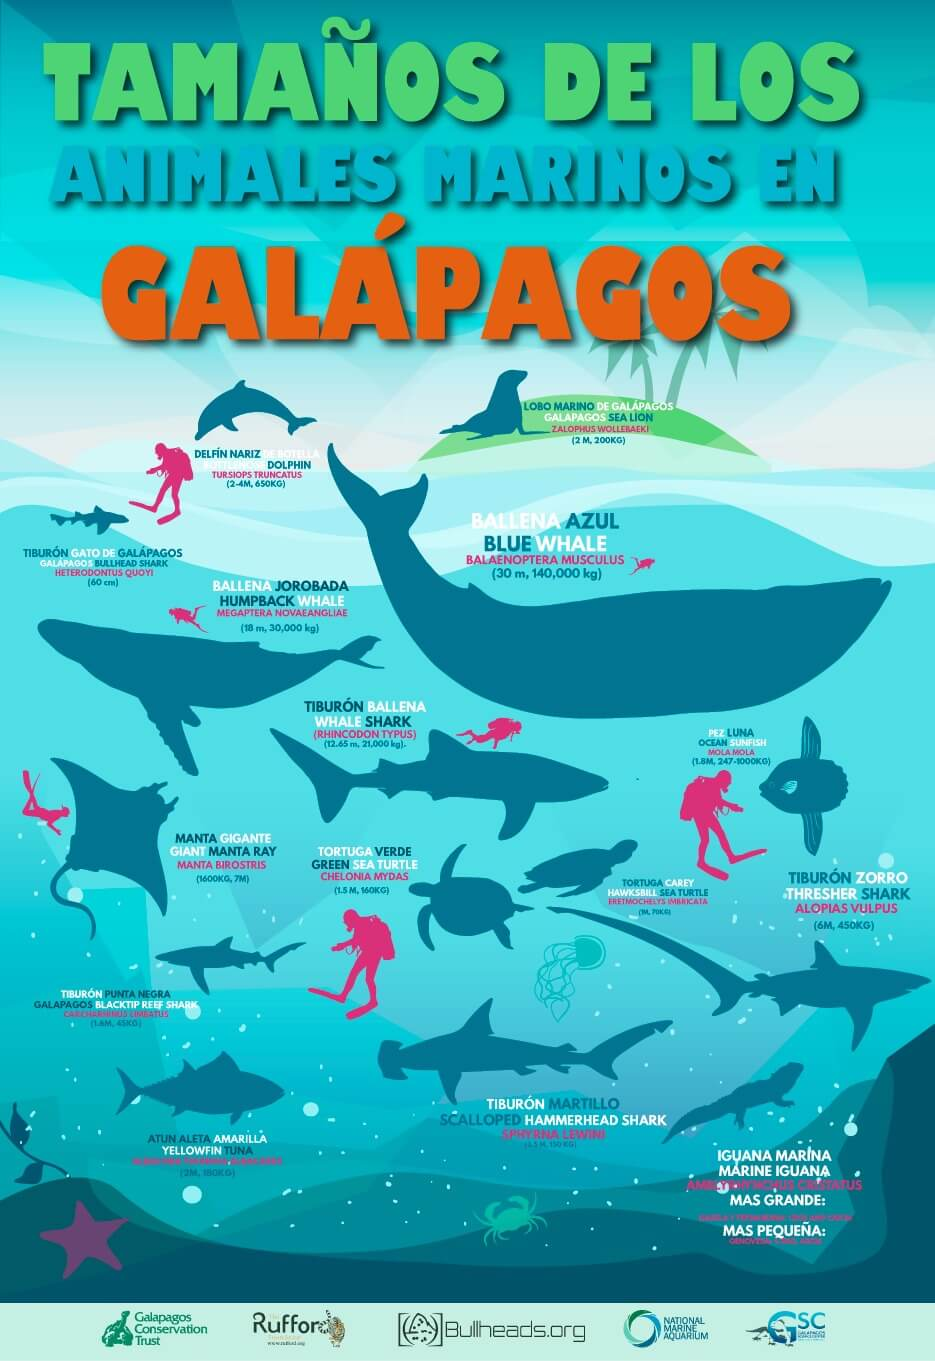 Galapagos Graphics: Sizes of Galapagos marine species